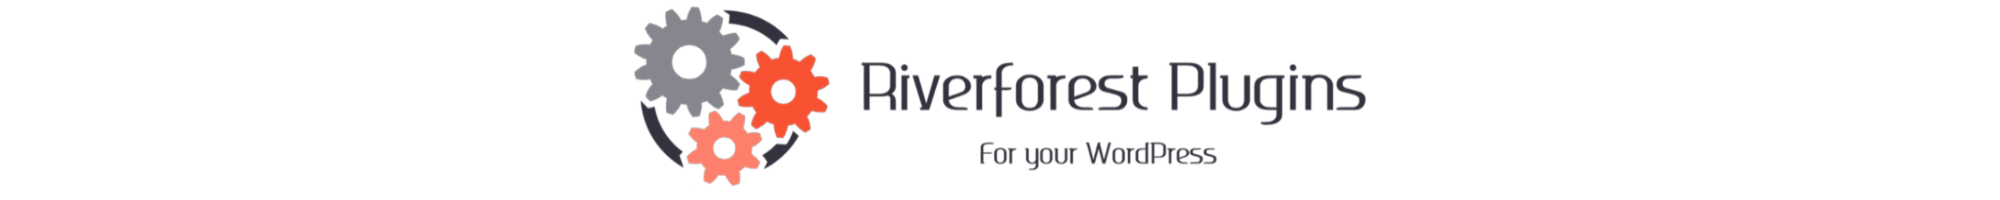 Riverforest Plugins ショップ